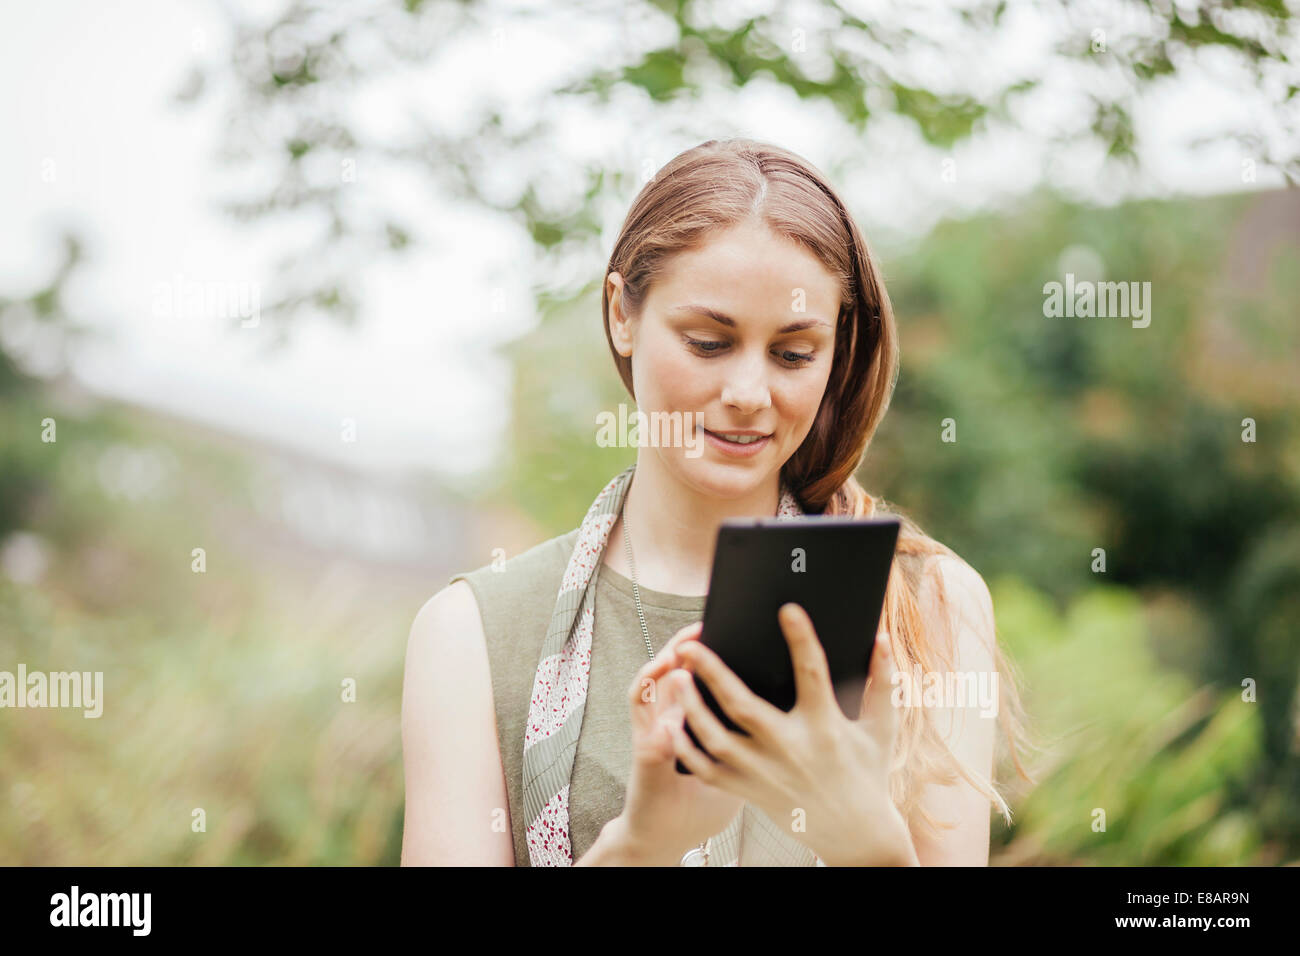 Young woman using touchscreen on digital tablet in field - Stock Image